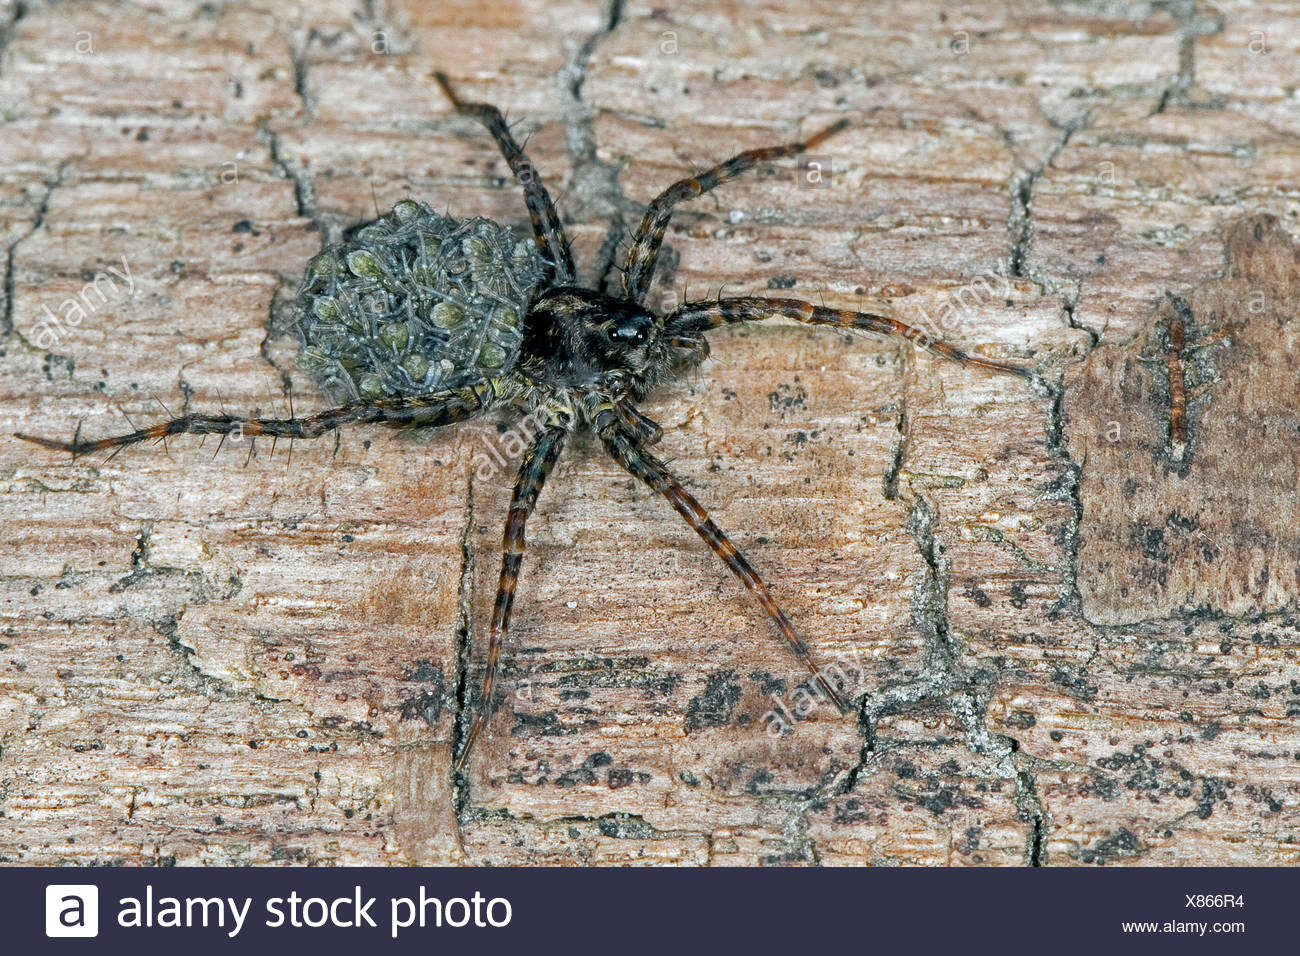 Spotted Wolf spider (Pardosa cf. amentata), female with juveniles on the back, Germany - Stock Image